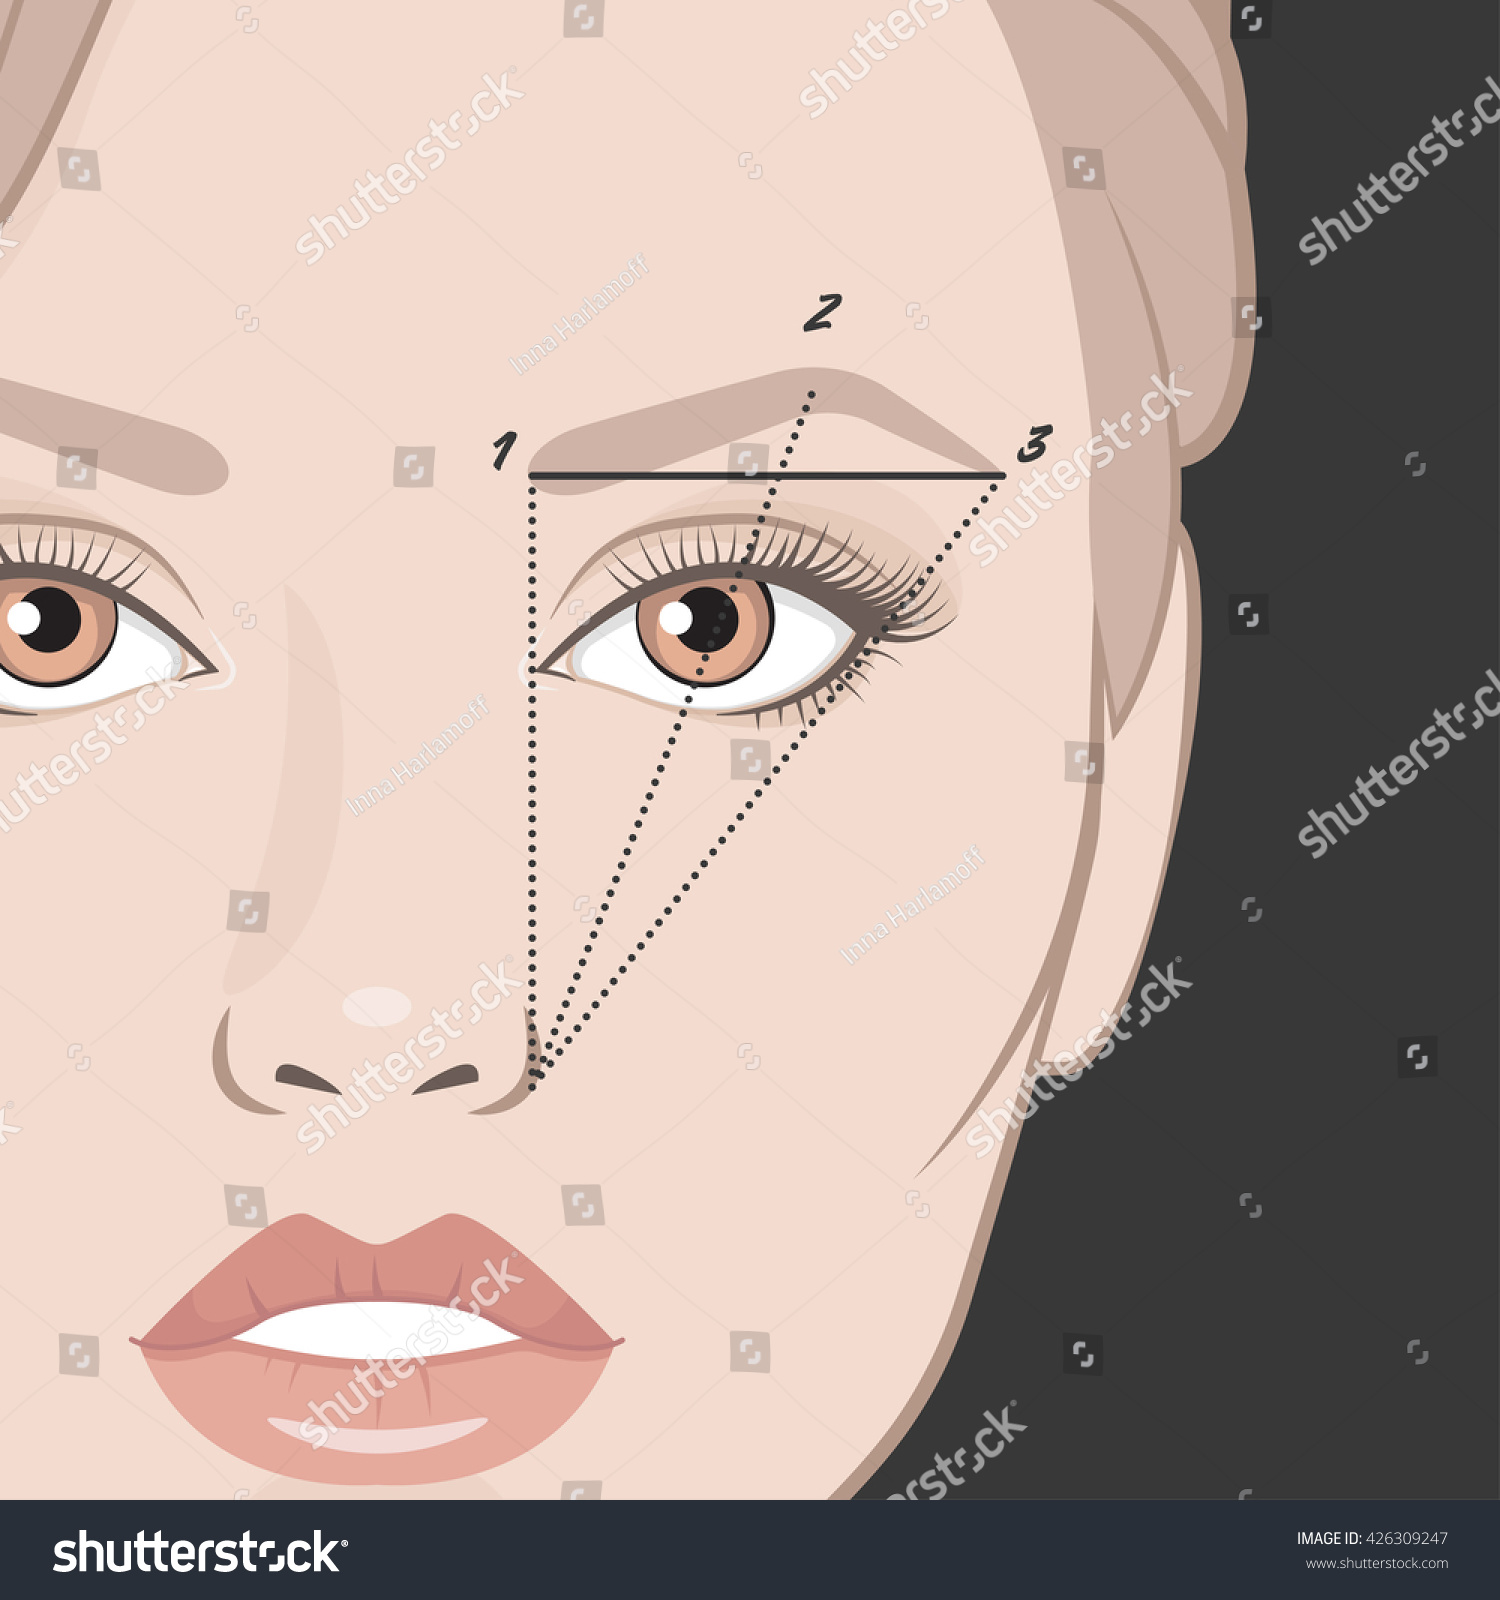 Vector Illustration Woman Face Eyebrow Mapping Stock Vector ...